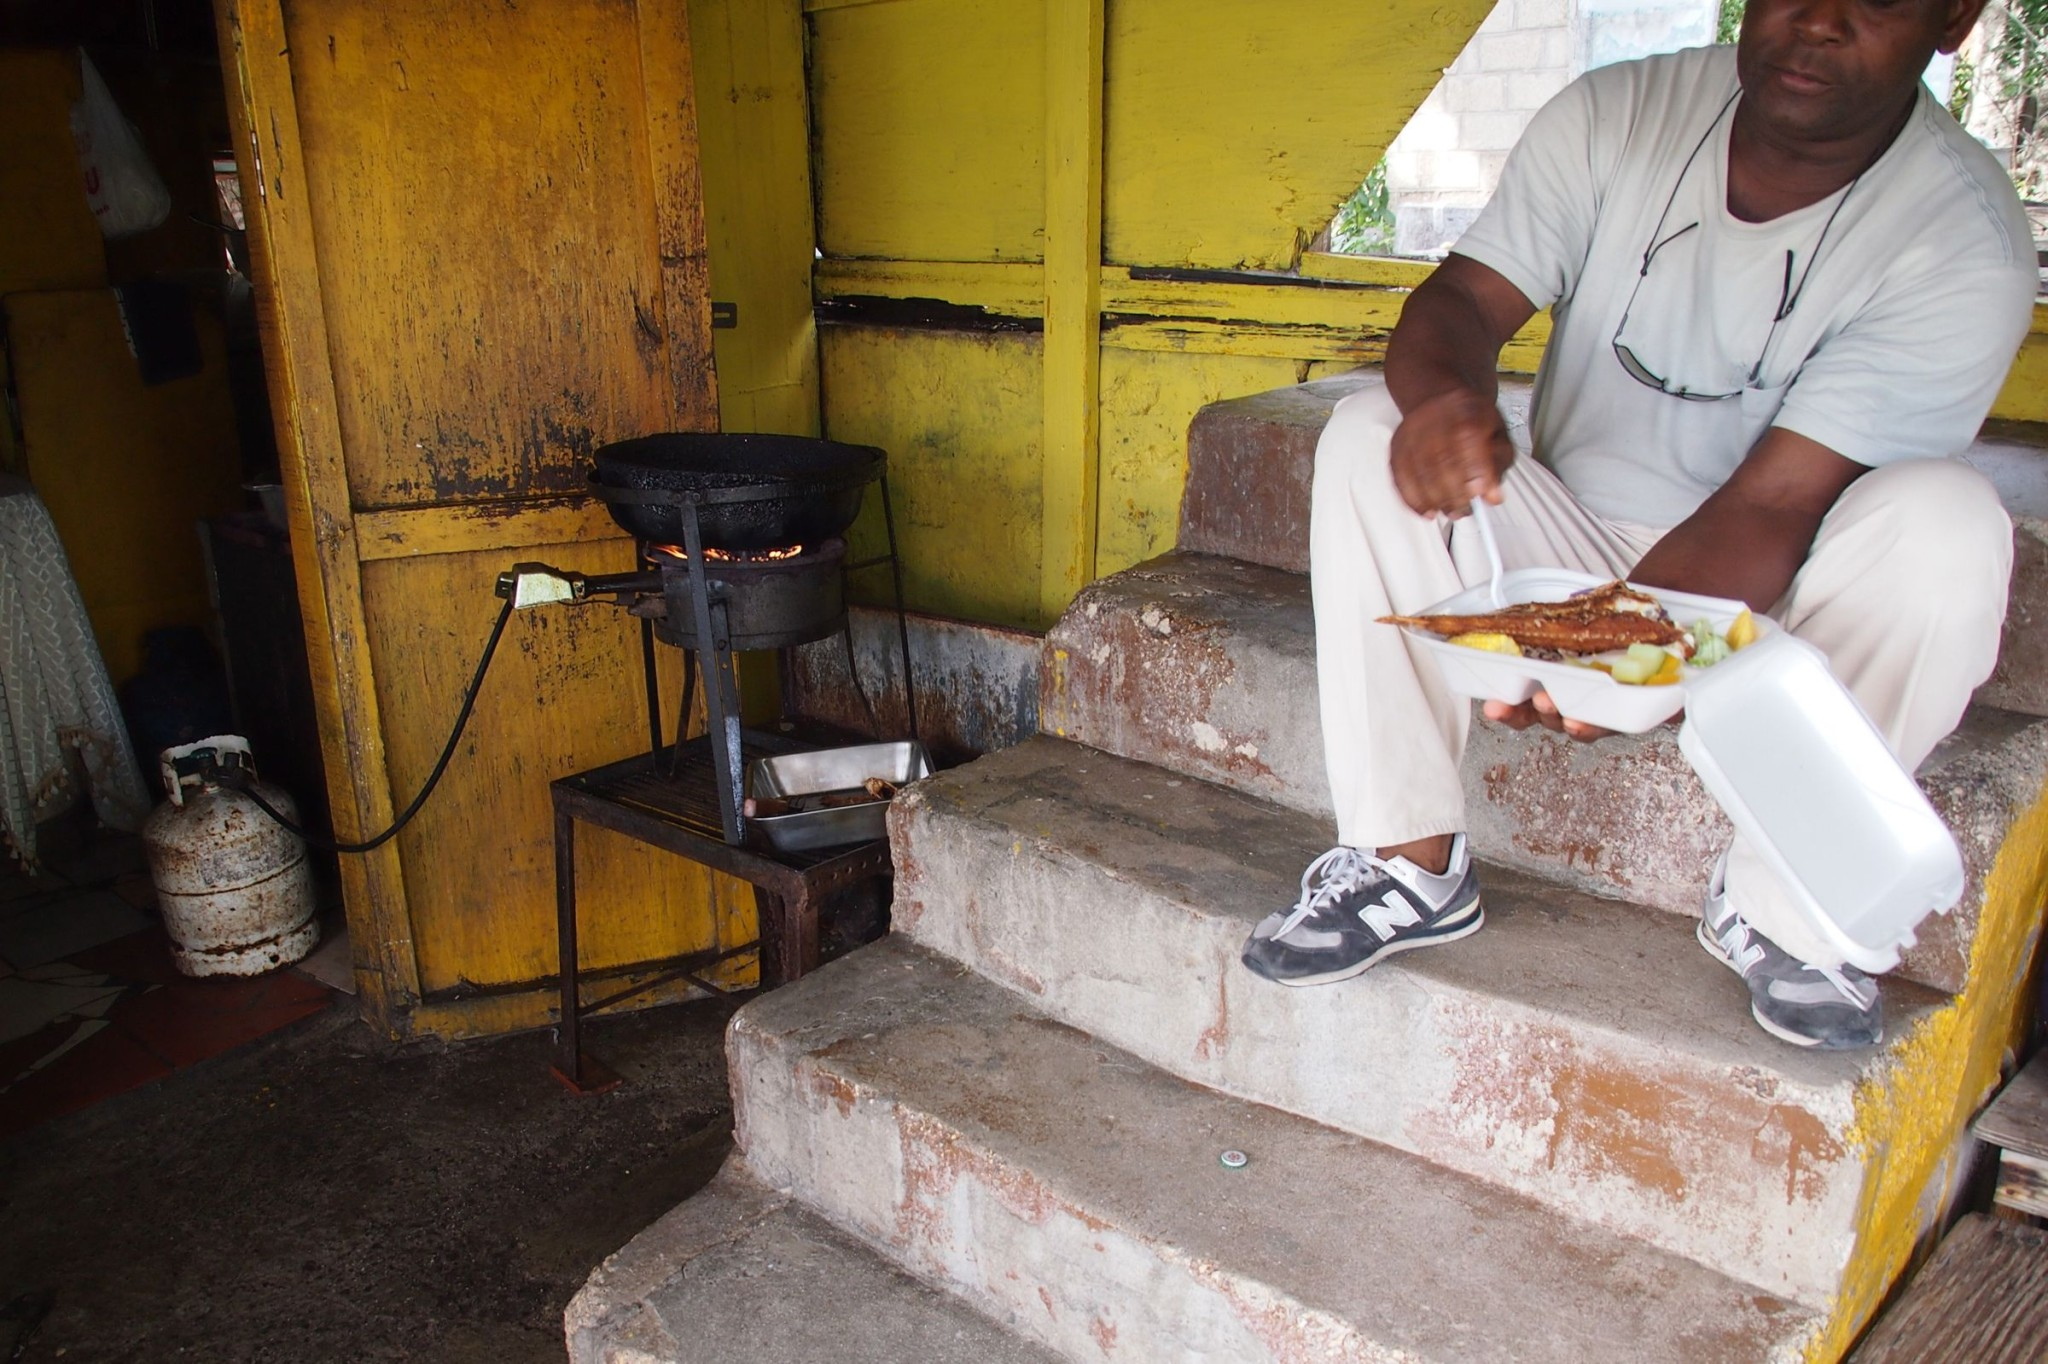 Cavell's Cook Shop, Antigua: For Real Island Food, Sit on the Steps